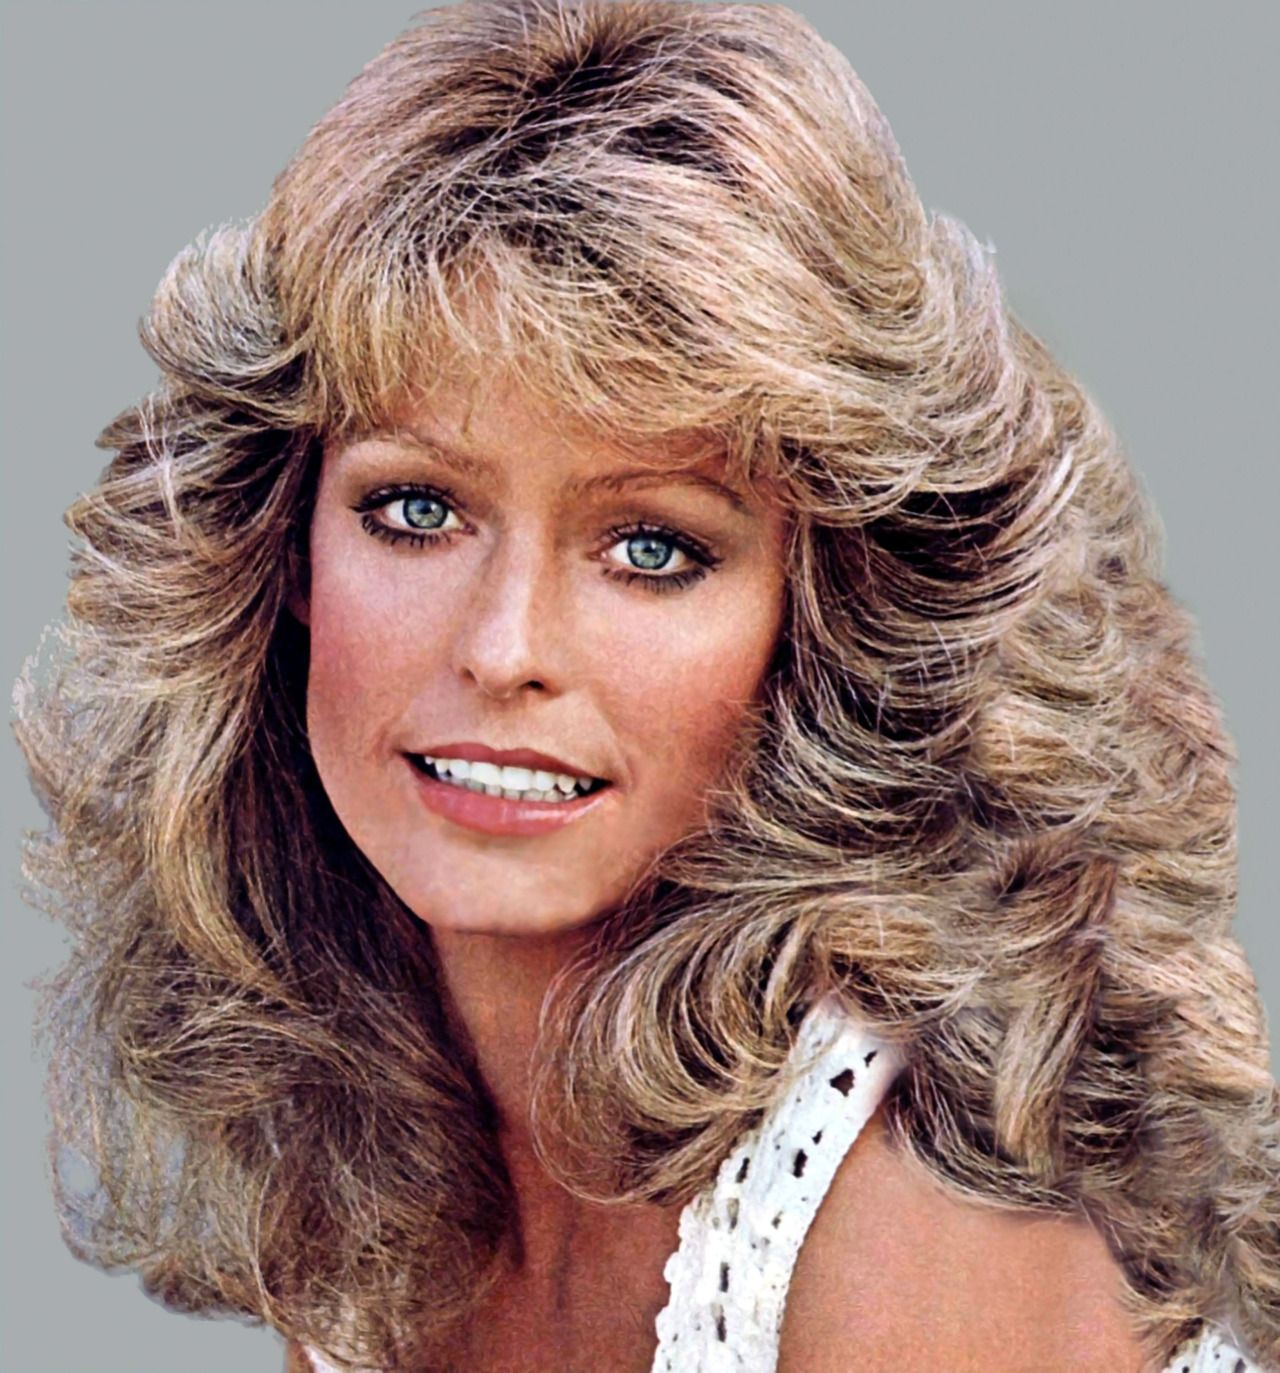 farrah fawcett parentsfarrah fawcett hair, farrah fawcett hair lyrics, farrah fawcett poster, farrah fawcett parents, farrah fawcett 2009, farrah fawcett and cher, farrah fawcett death, farrah fawcett hair by capital cities, farrah fawcett imdb, farrah fawcett makeup, farrah fawcett 2000, farrah fawcett husband, farrah fawcett signature, farrah fawcett barbie, farrah fawcett young, farrah fawcett hair tutorial, farrah fawcett hair meaning, farrah fawcett skateboard, farrah fawcett barbie ebay, farrah fawcett interview